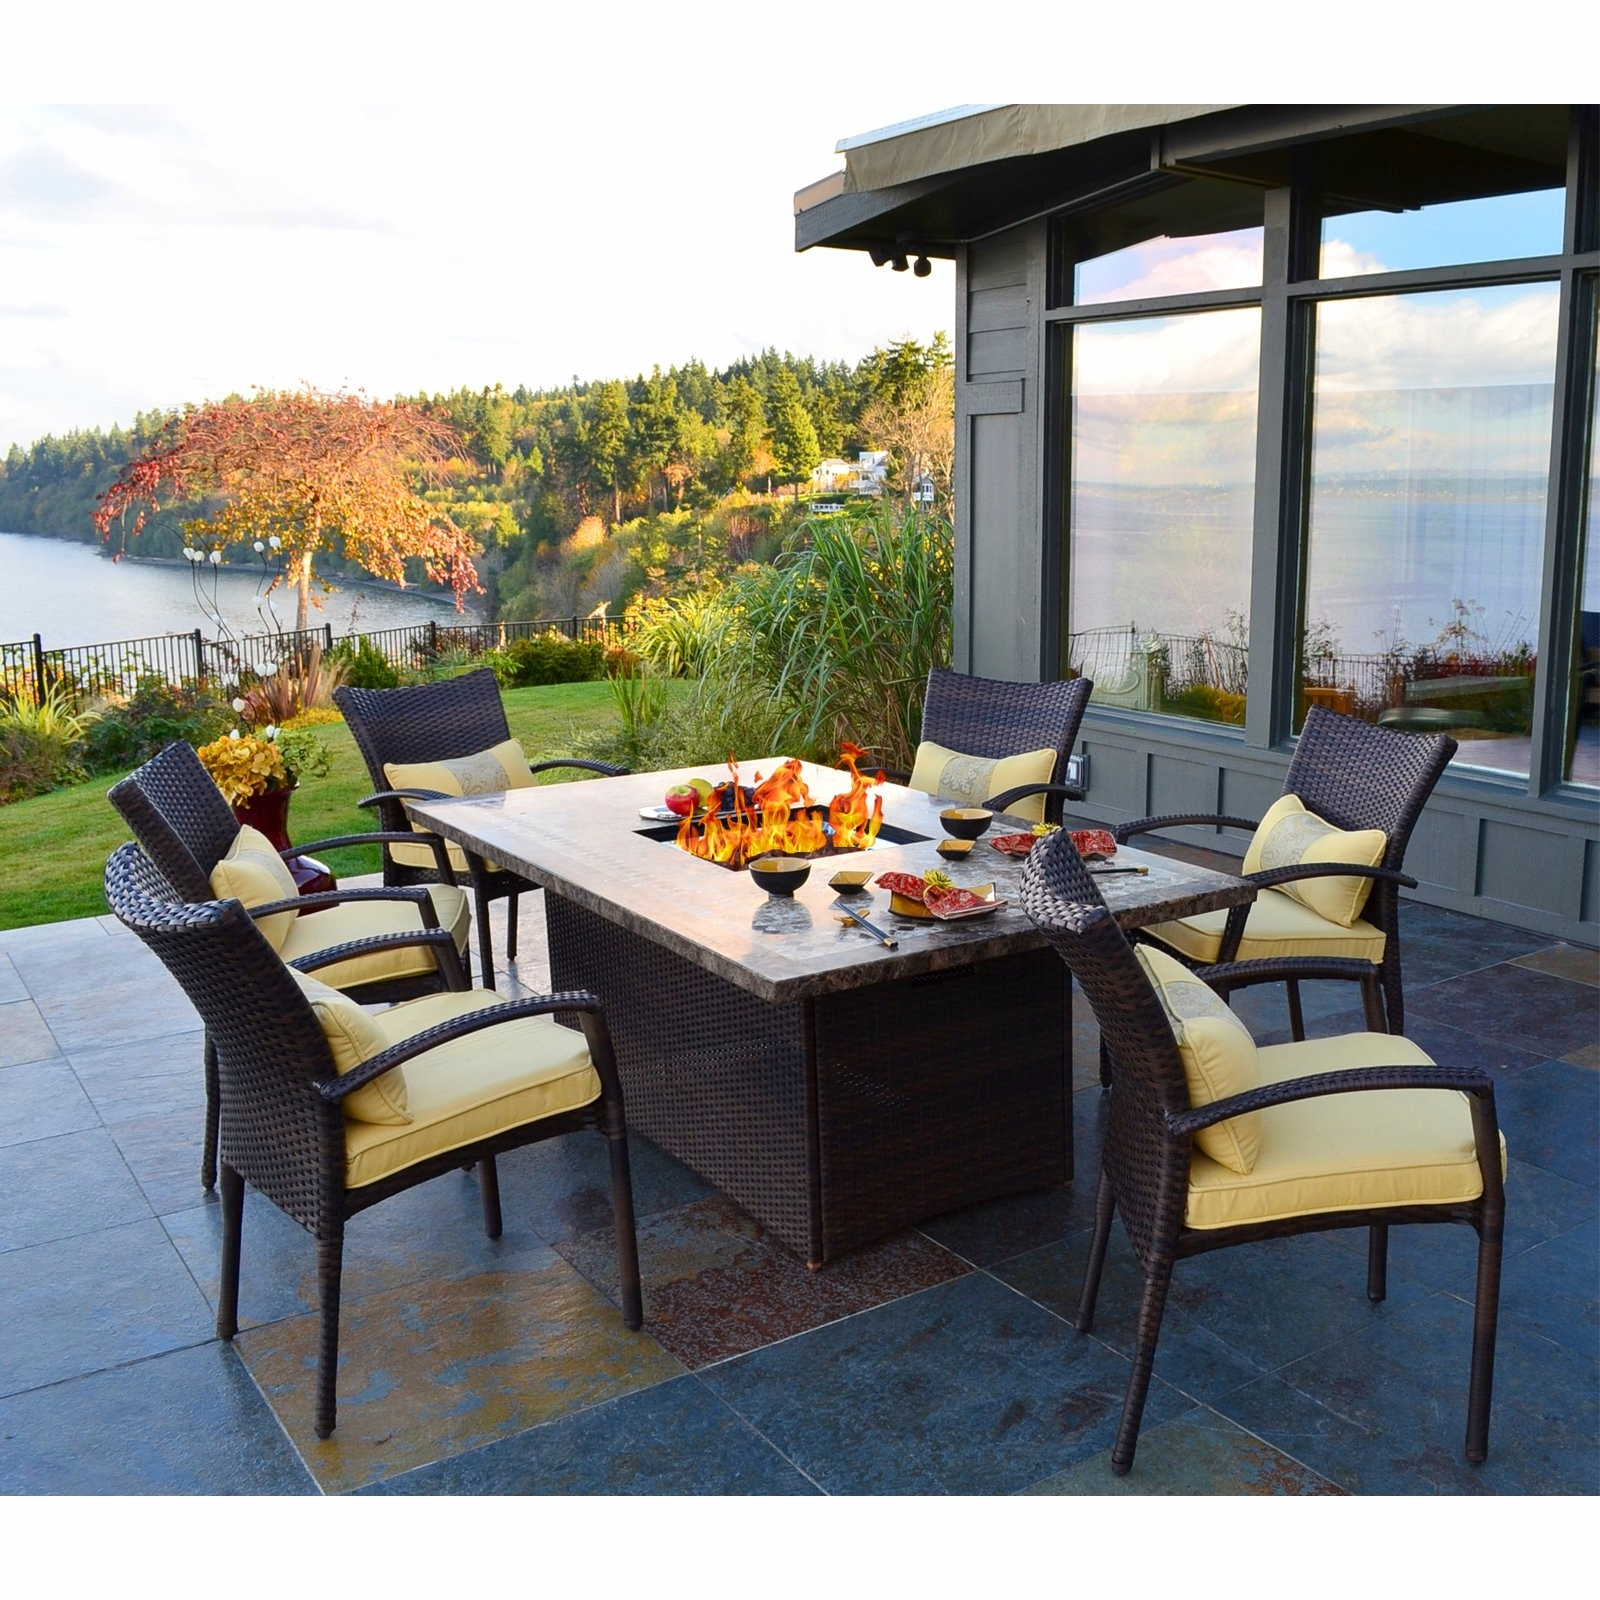 Patio Conversation Sets With Fire Table Throughout Well Known Patio Dining Table With Fire Pit Lovely Conversation Sets Fire Pit (View 13 of 20)